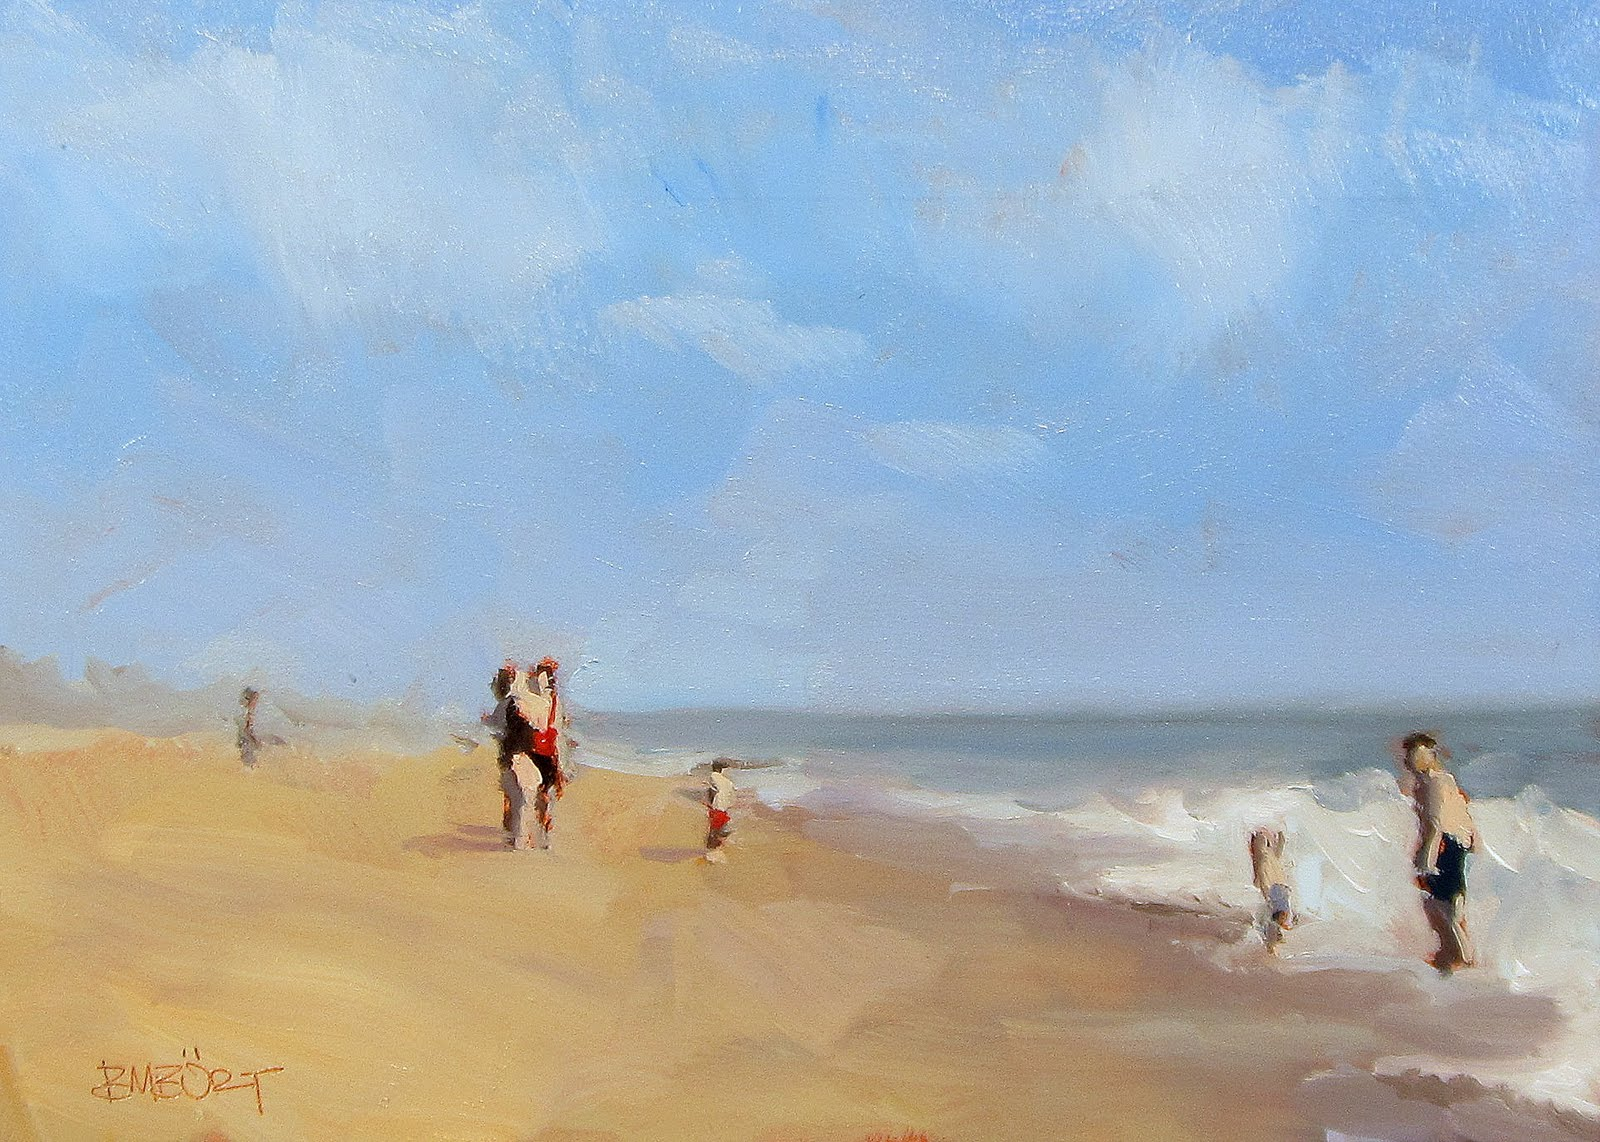 """ART 4 DIAPERS (DAILY DIAPER #180) At The Beach"" original fine art by Brian Burt"